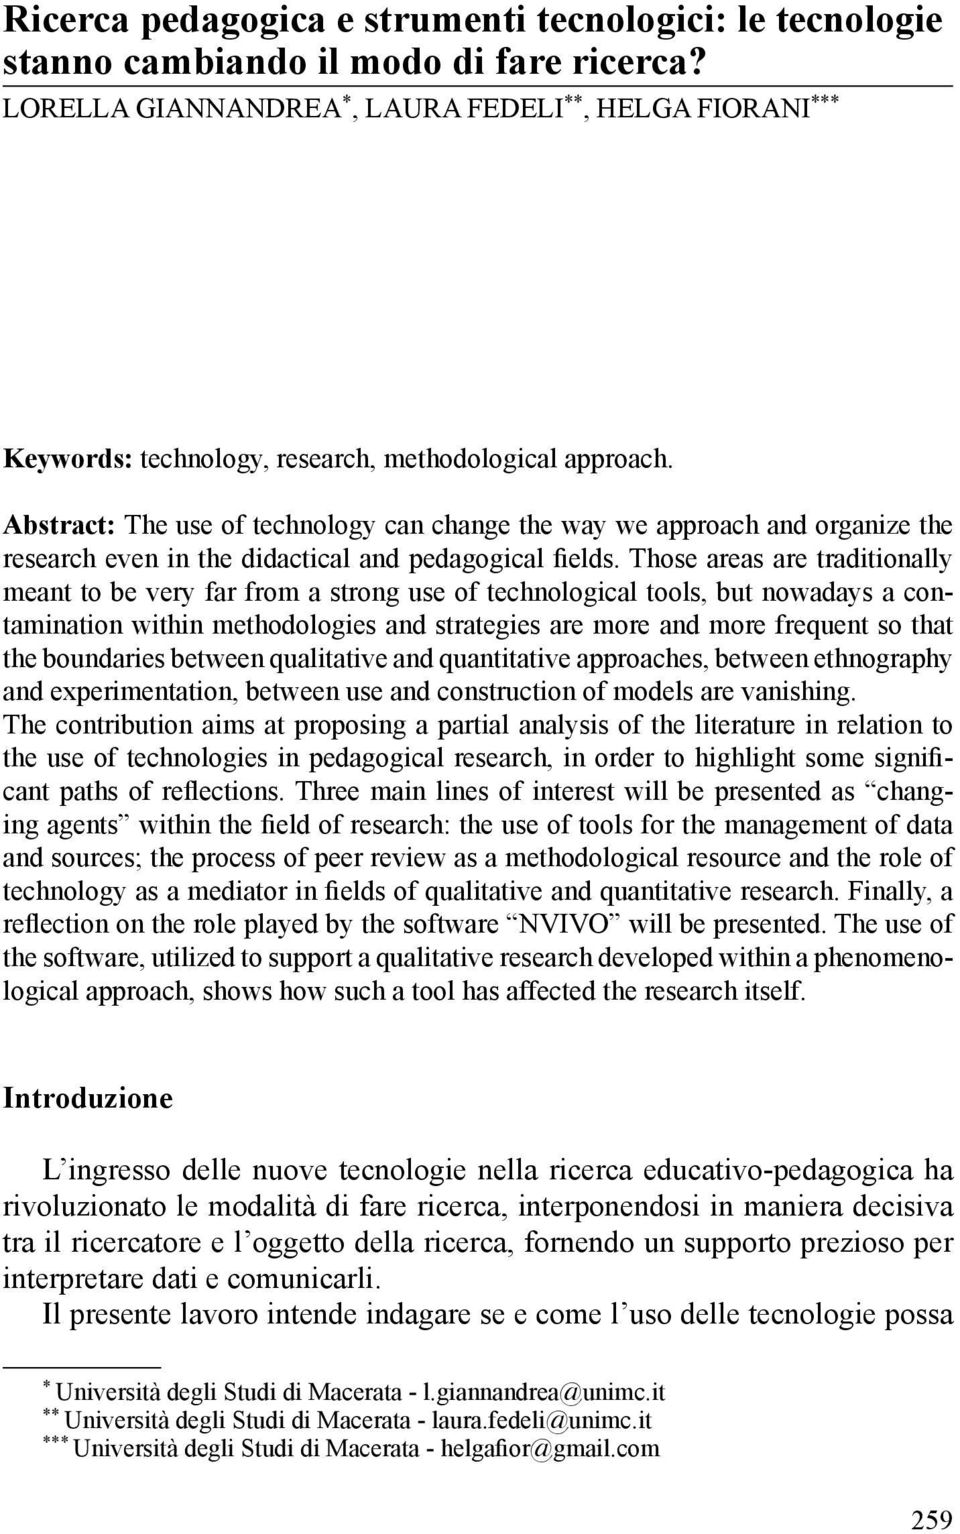 Abstract: The use of technology can change the way we approach and organize the research even in the didactical and pedagogical fi elds.